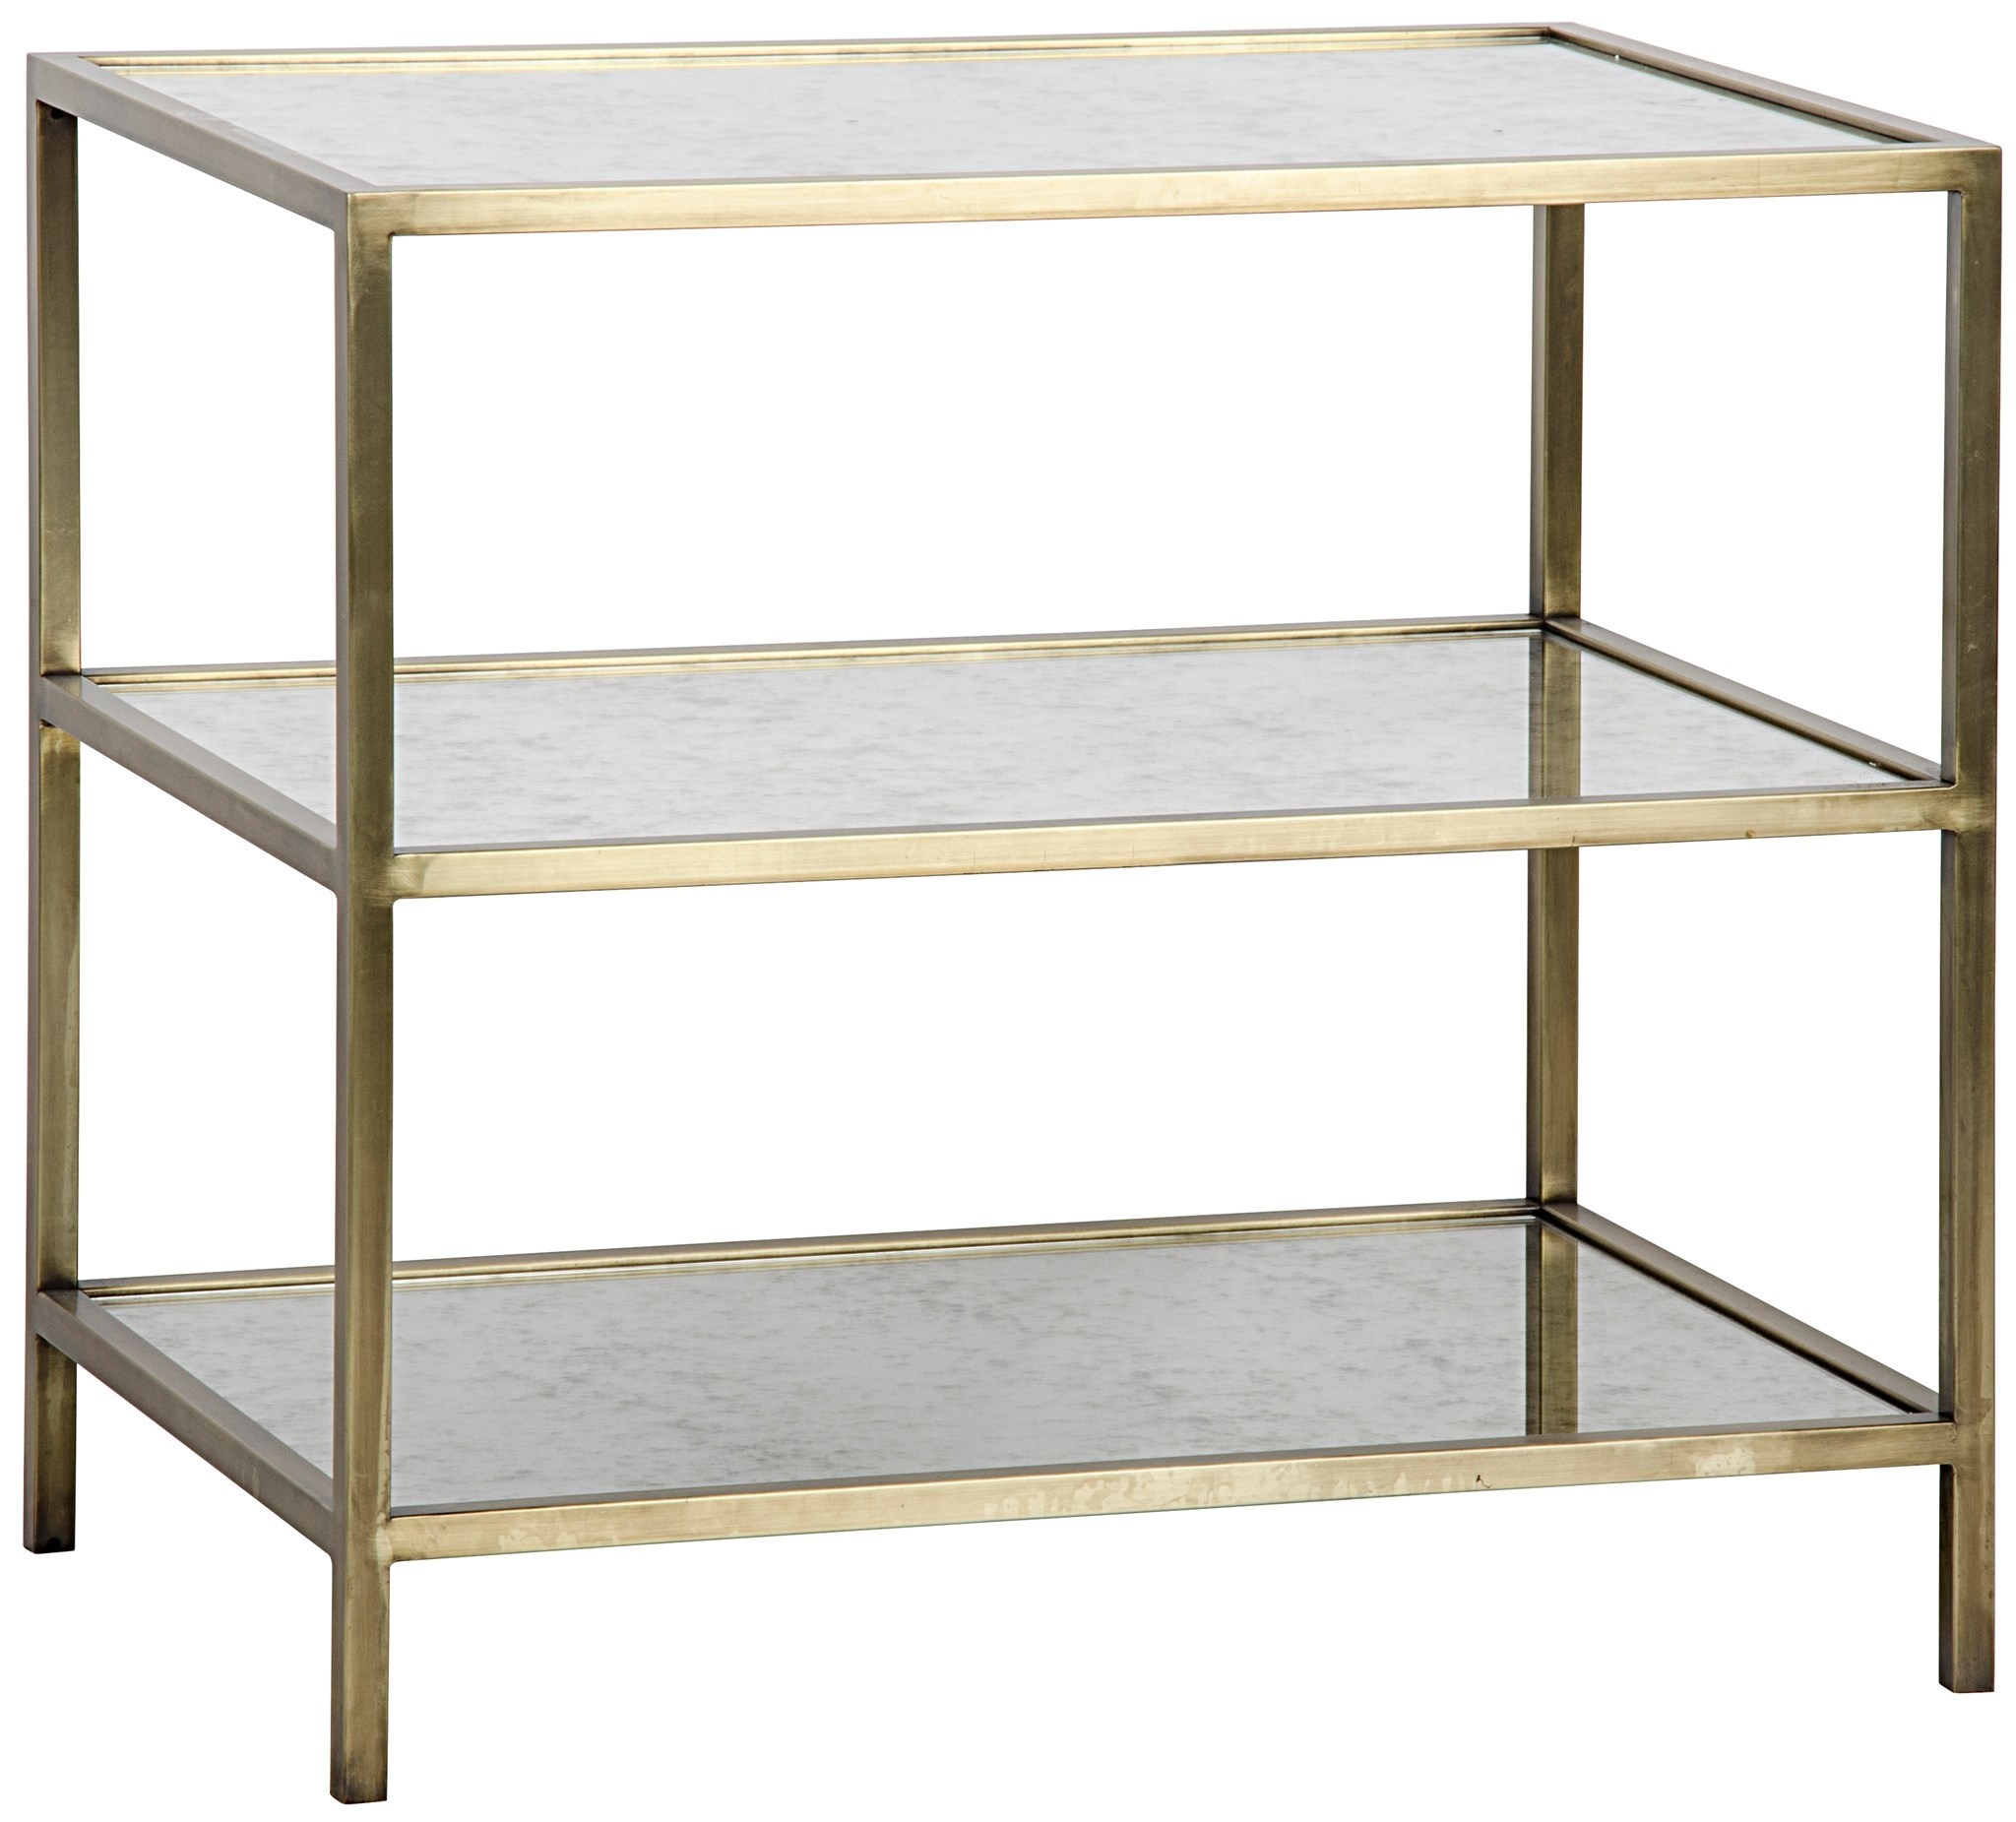 tier side table antique brass metal and mirror quick tiered accent diy outdoor long white wicker furniture gray nightstand modern legs tall thin lamps chest nook plus threshold